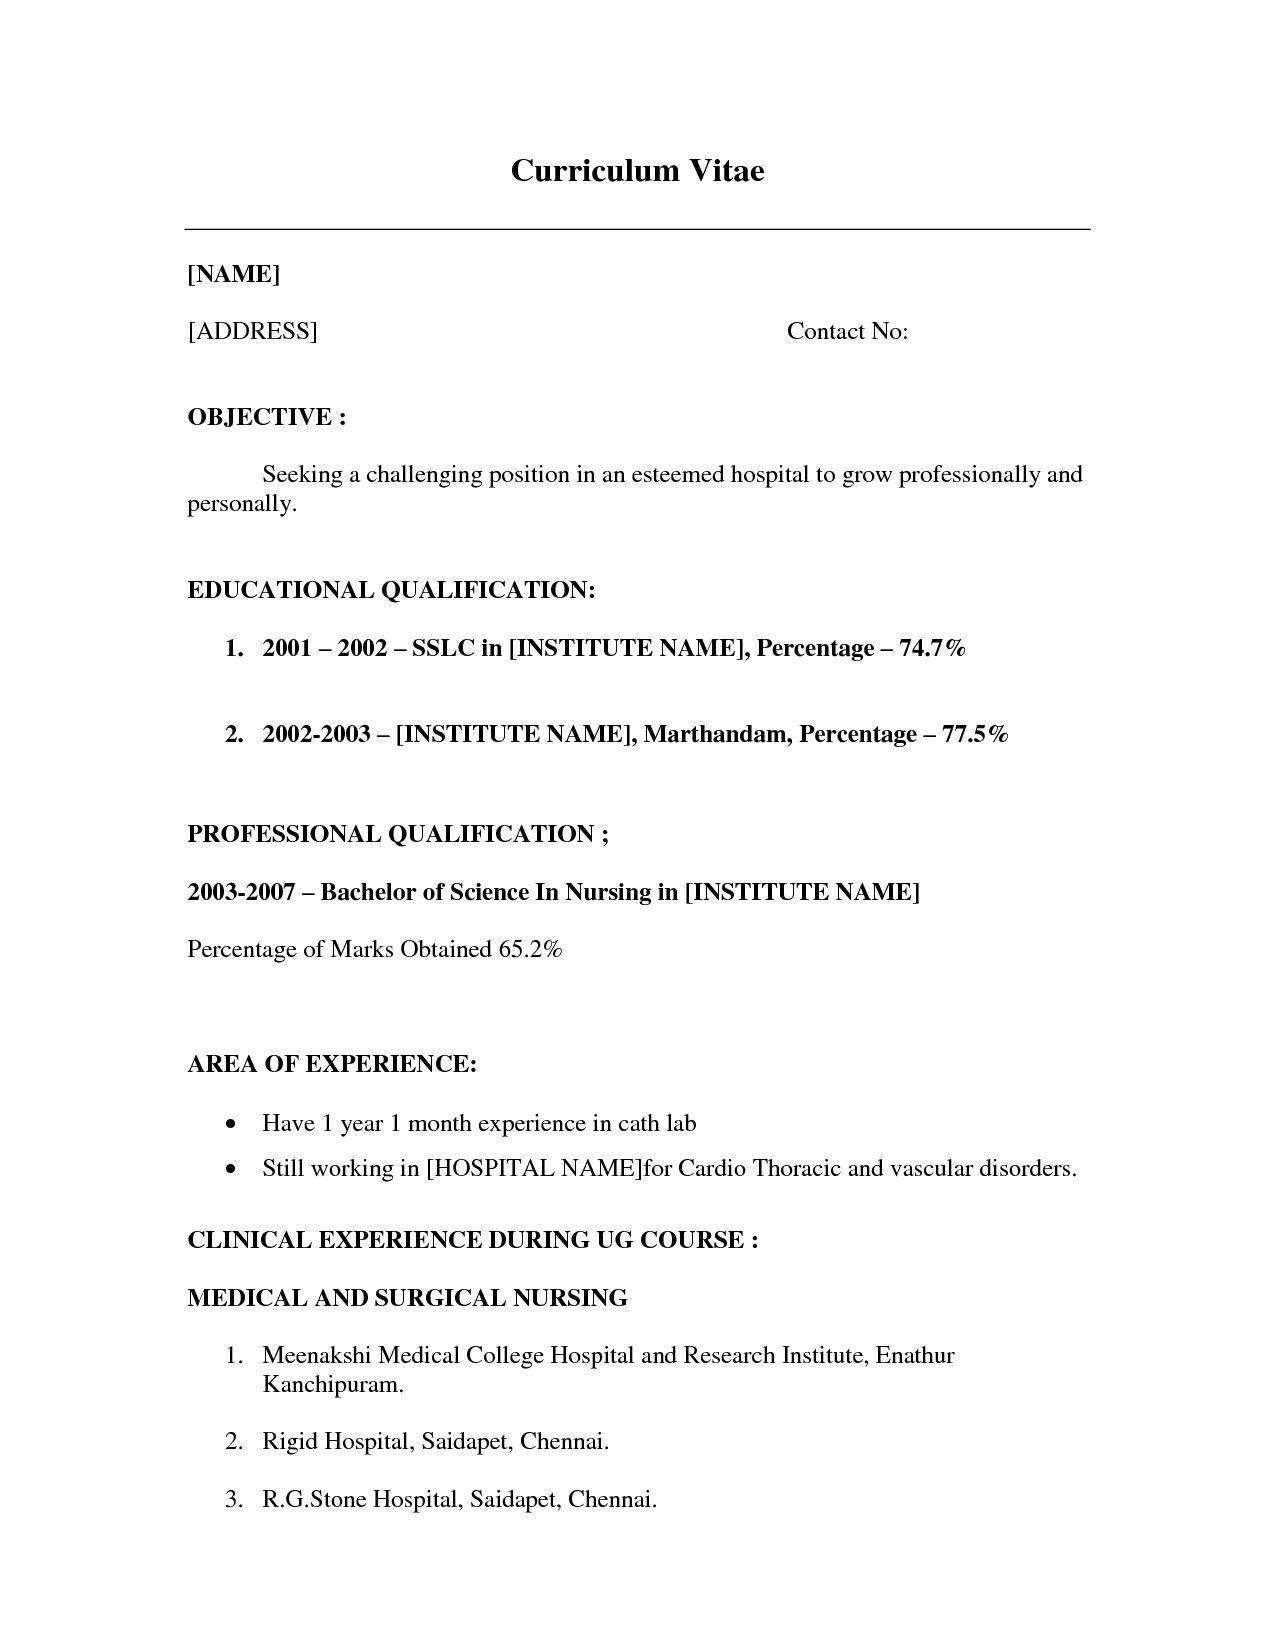 Resume sample without work experience herrlich resume with